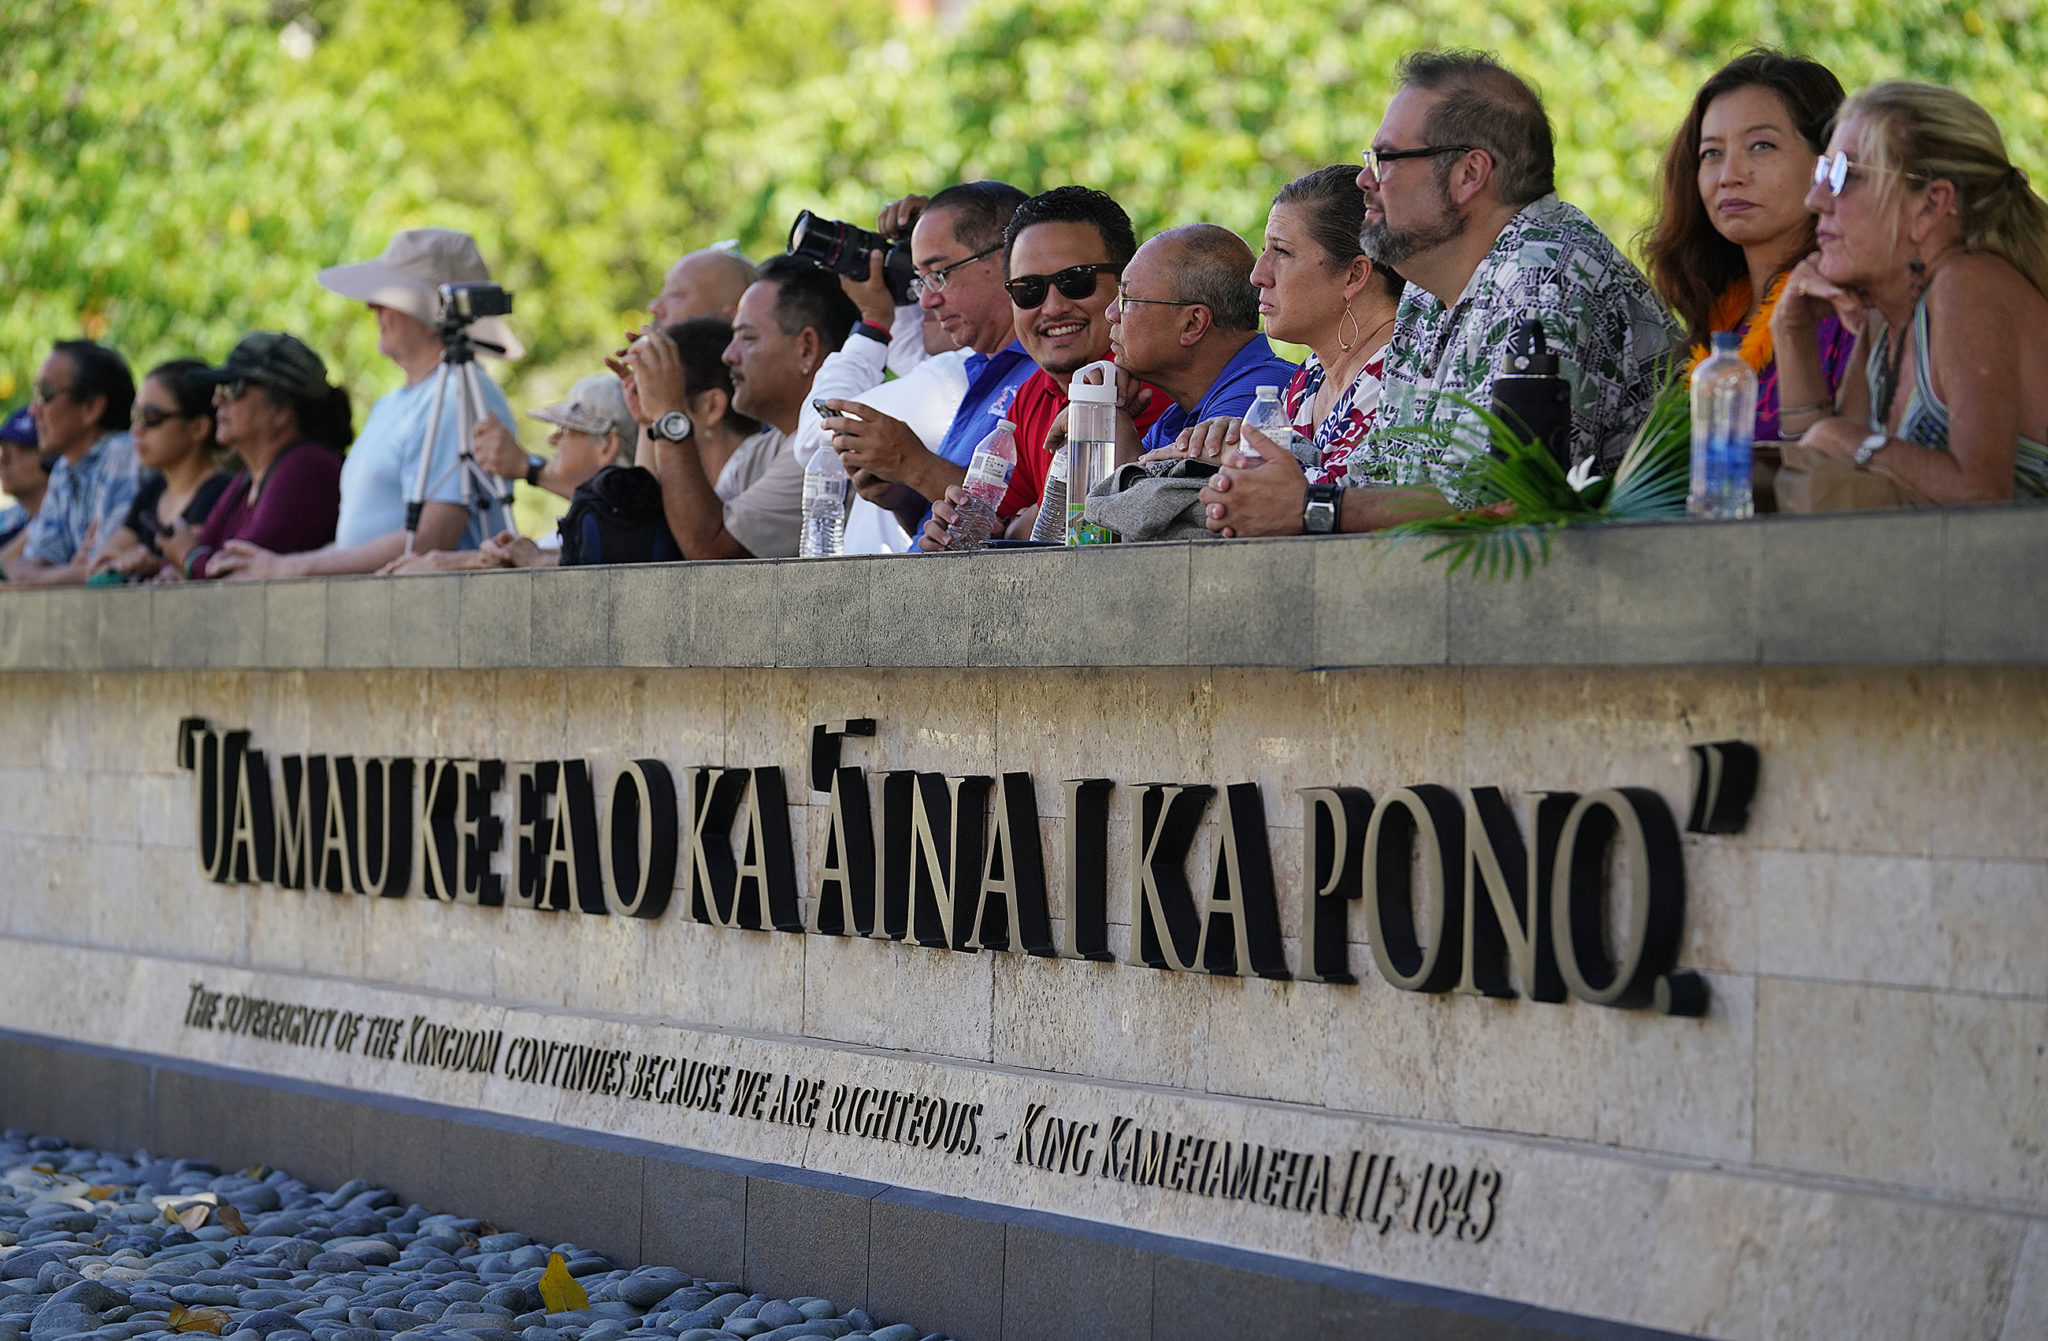 <p>People gather Tuesday at Thomas Square for the dedication of the Kamehameha III sculpture near a a new sign bearing the inscription, &#8220;Ua Mauke Ea o ka ʻĀina i ka Pono&#8221; (&#8220;The sovereignty of the kingdom continues because we are righteous&#8221;).</p>